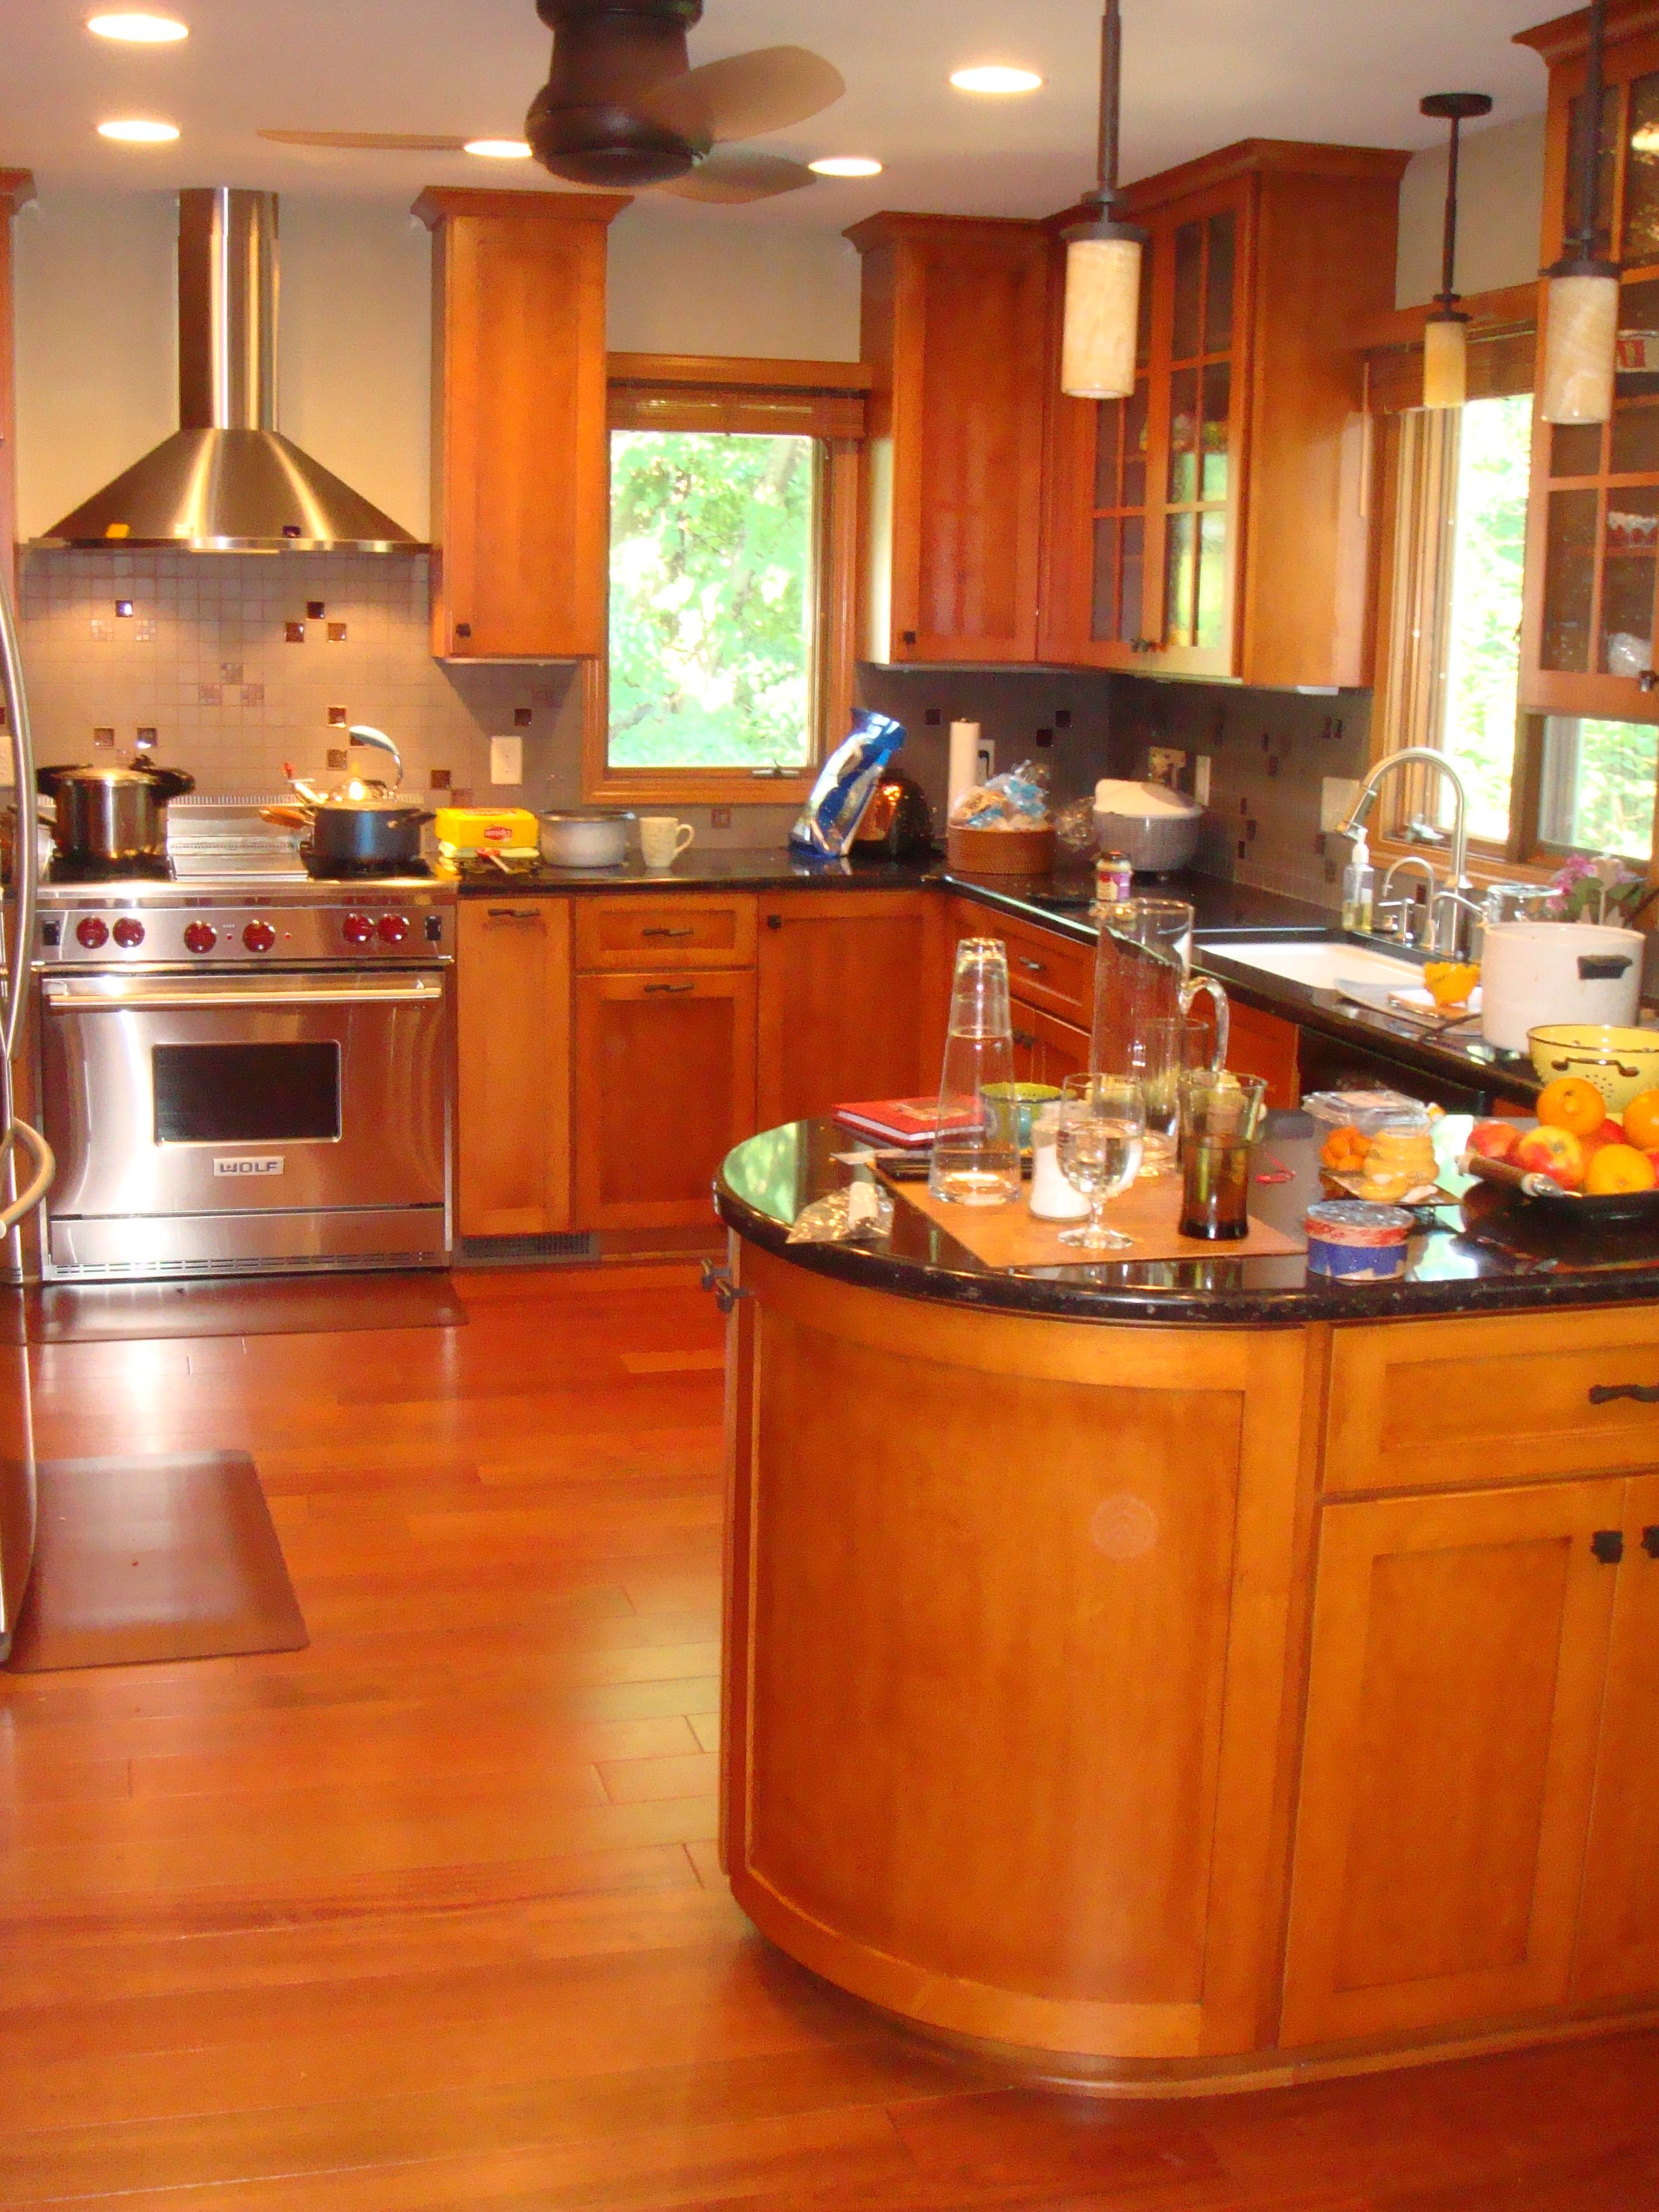 Kitchen Remodeling Leads Good News For Homeowners Minor Kitchen Remodel Leads To Major .